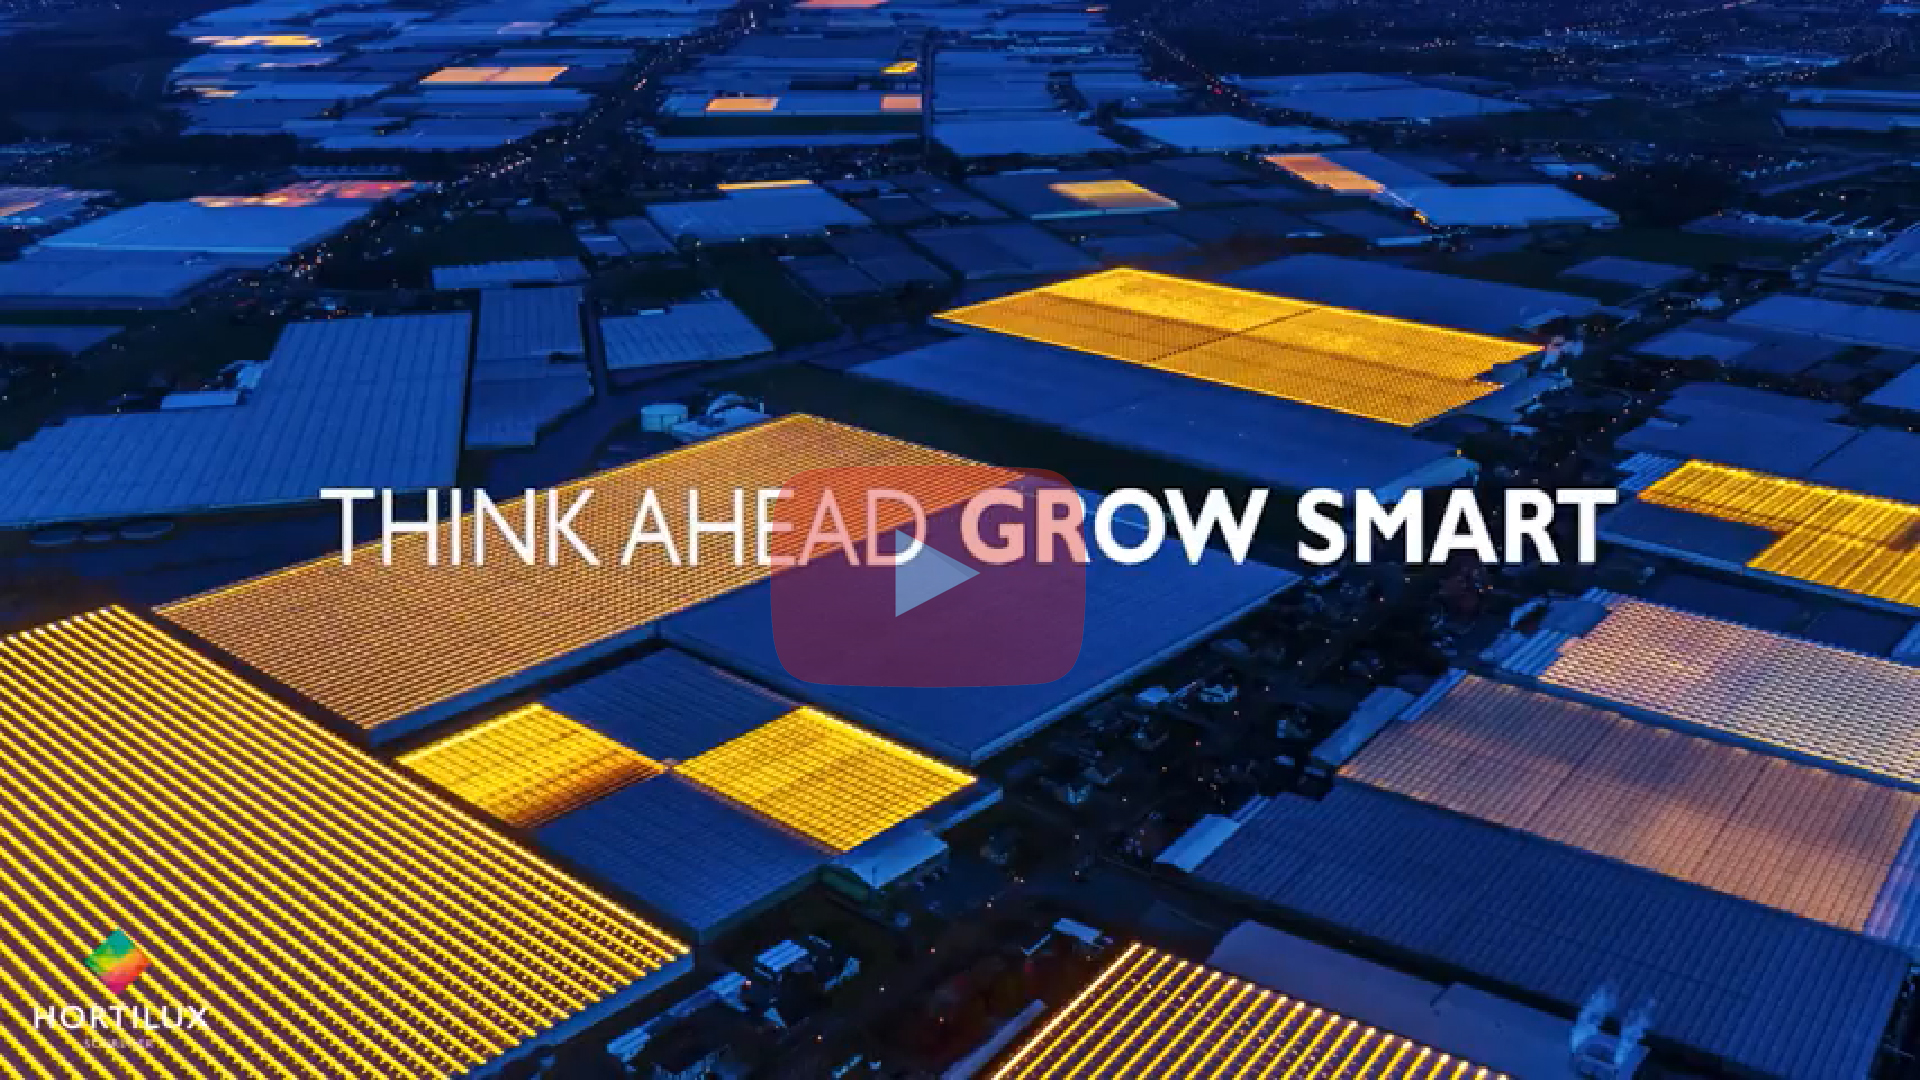 Think Ahead Grow Smart | Watch the video